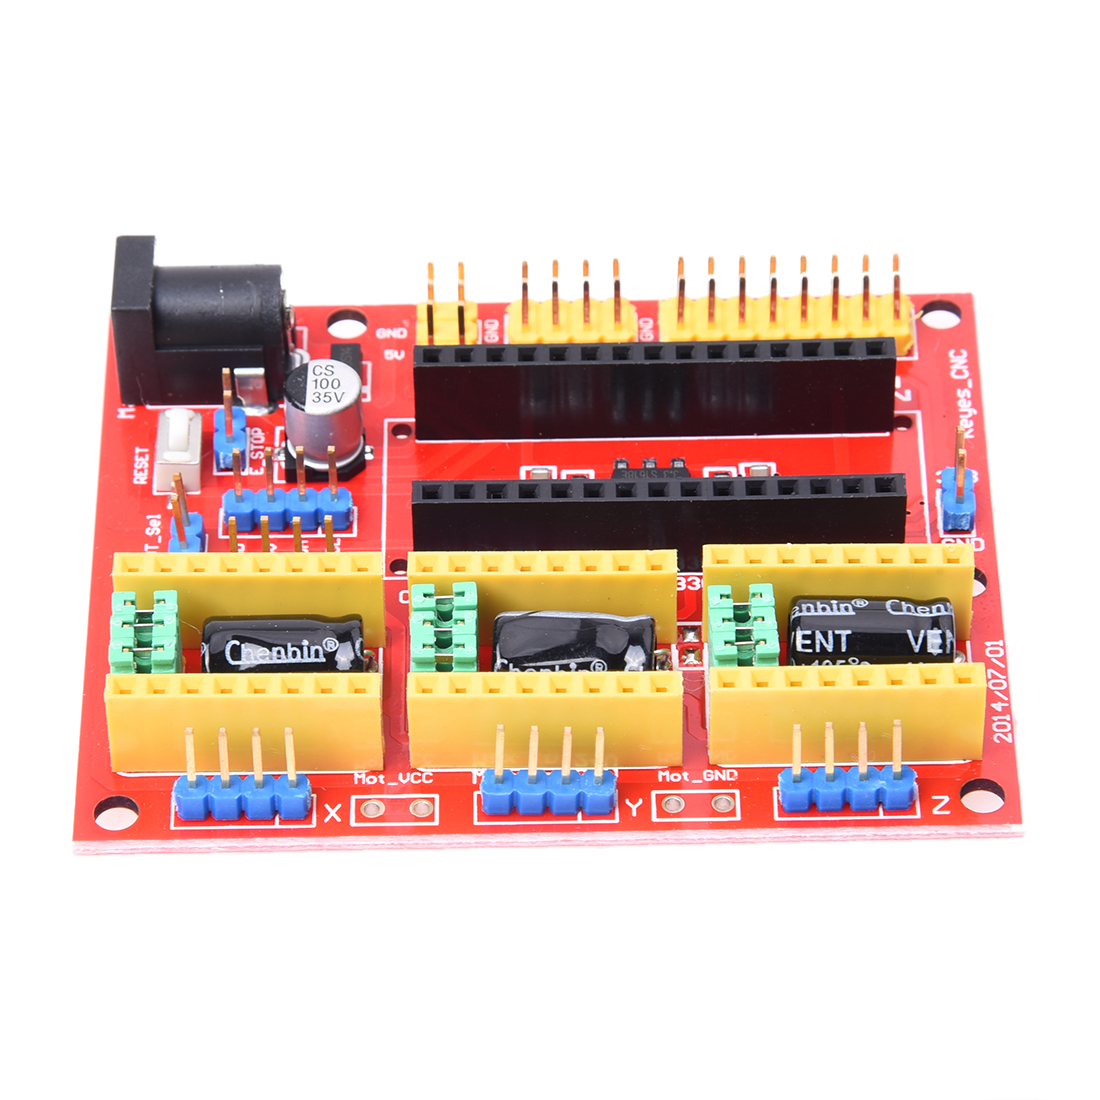 1 x Red CCL CNC V4 engraving machine expansion board For Arduino GRBL